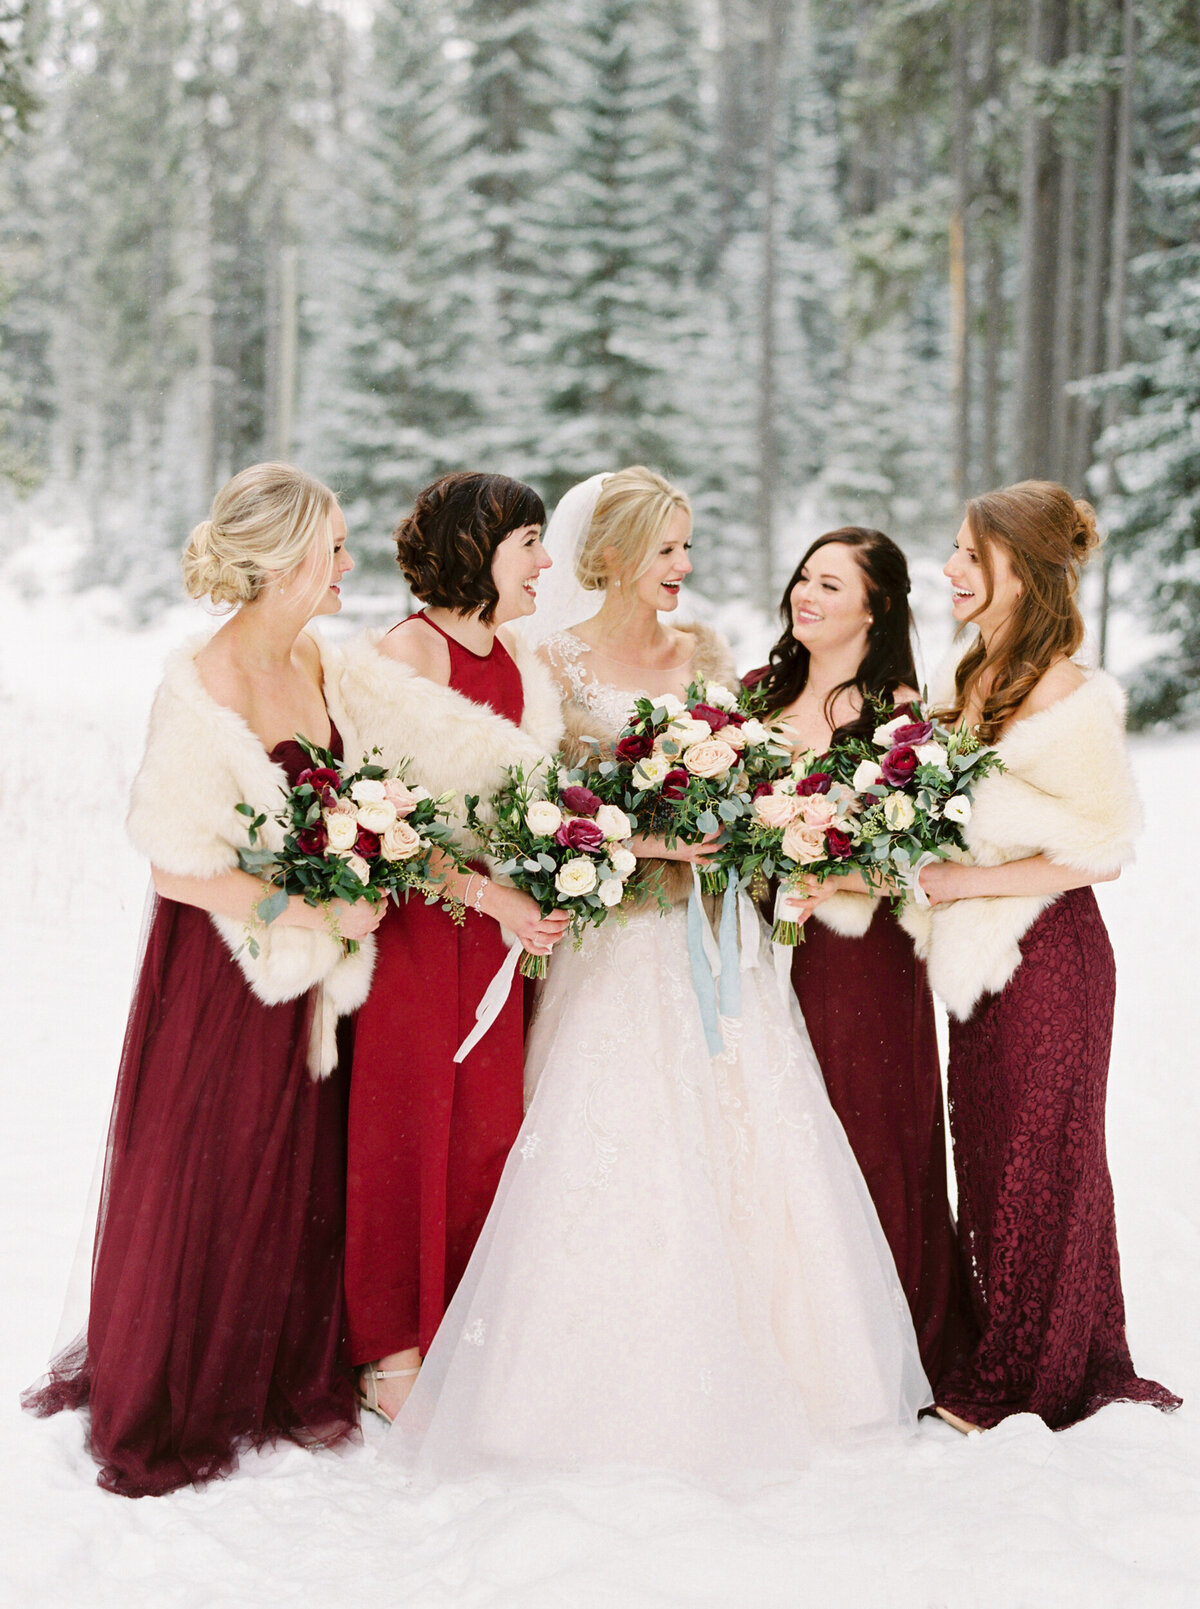 Banff Winter Wedding Photo Inspiration - Banff Wedding Planner